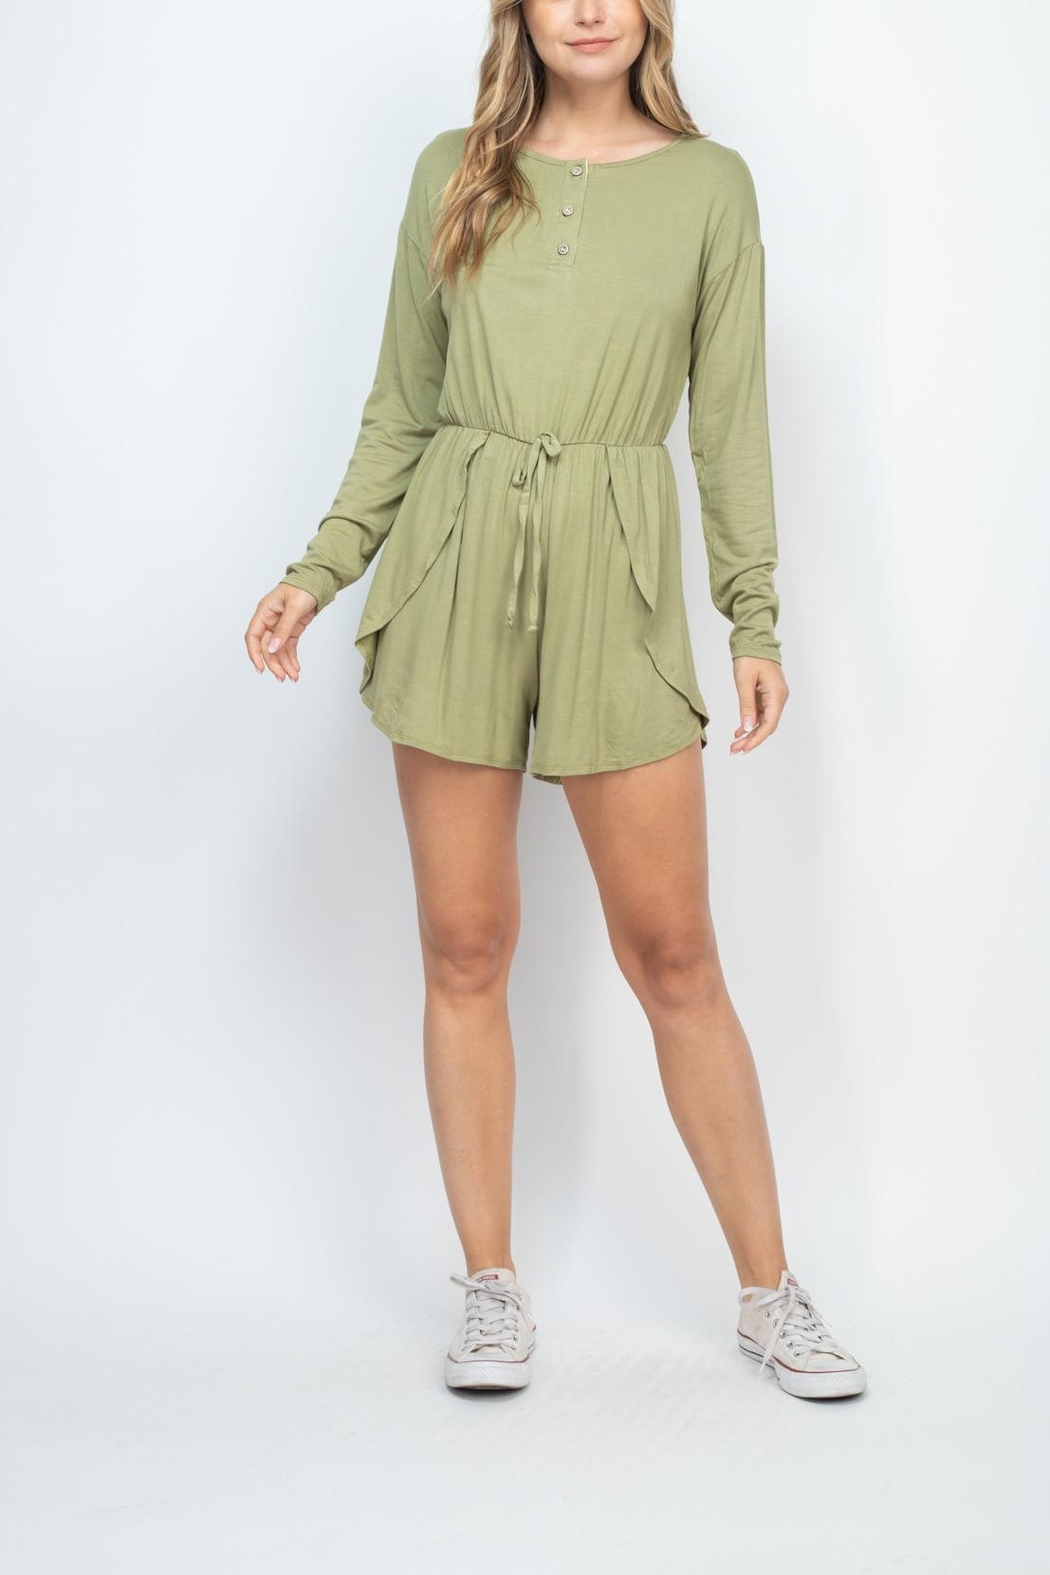 Riah Fashion Olive Romper - Side Cropped Image